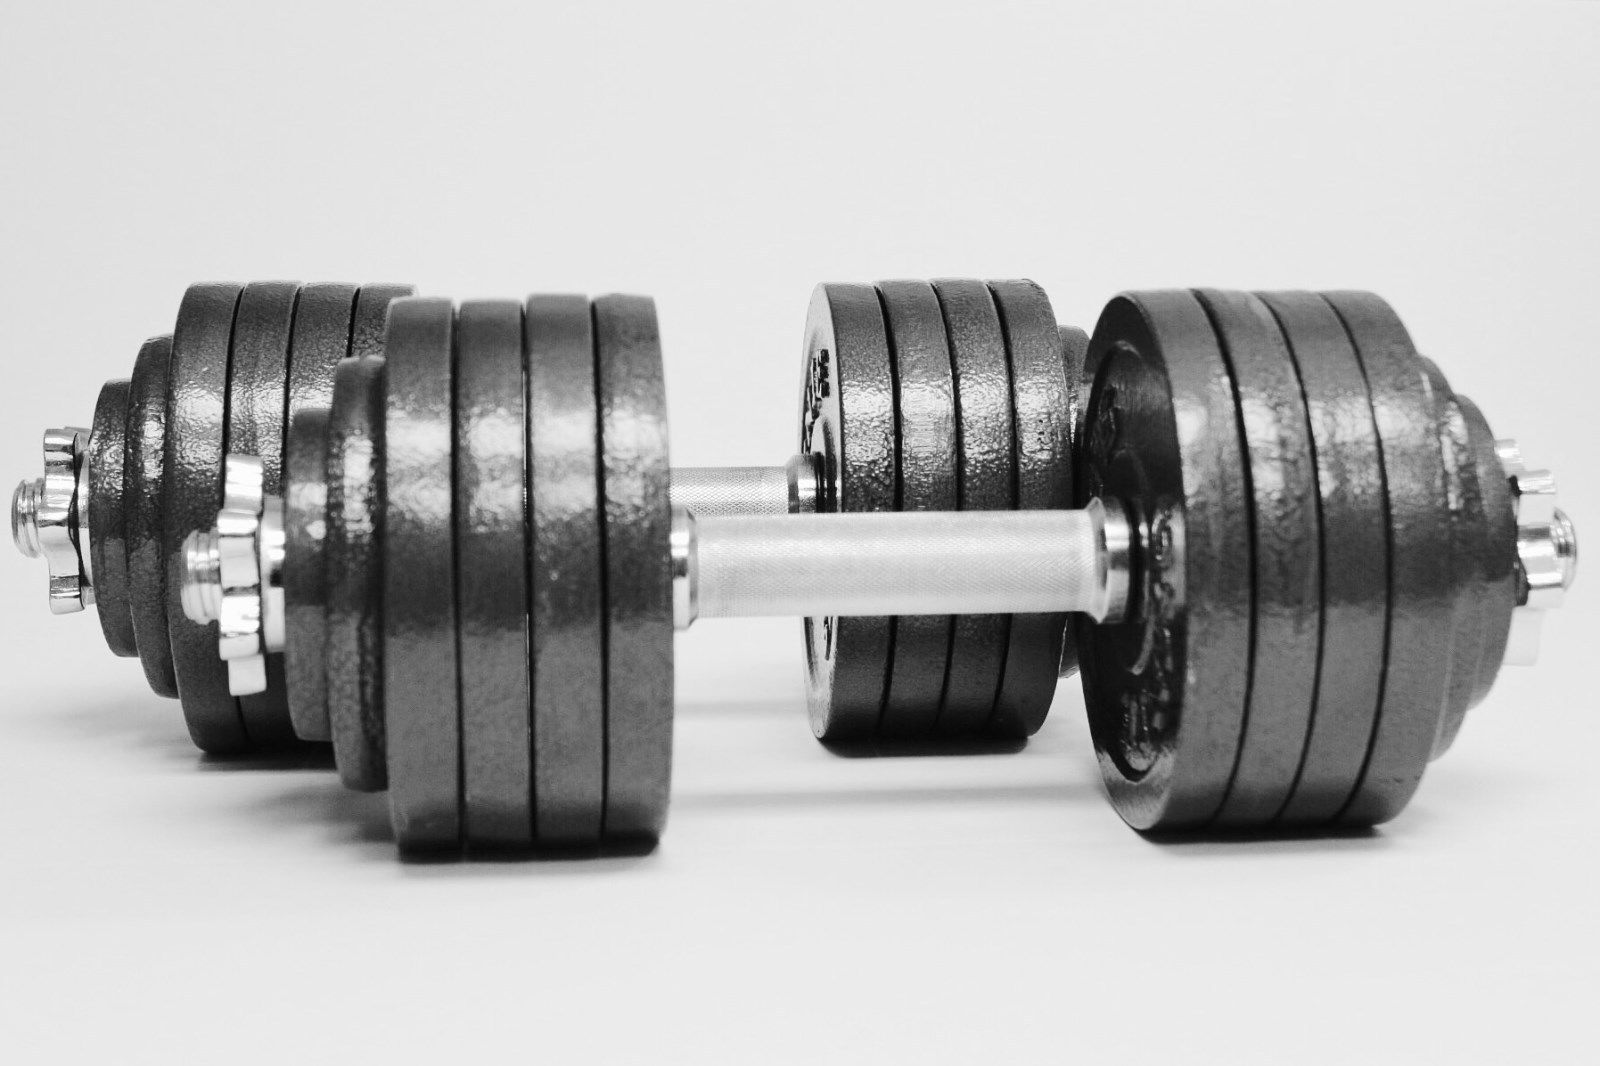 Omnie 105 Lbs Adjustable Dumbbells Fitness Weight Set Gym